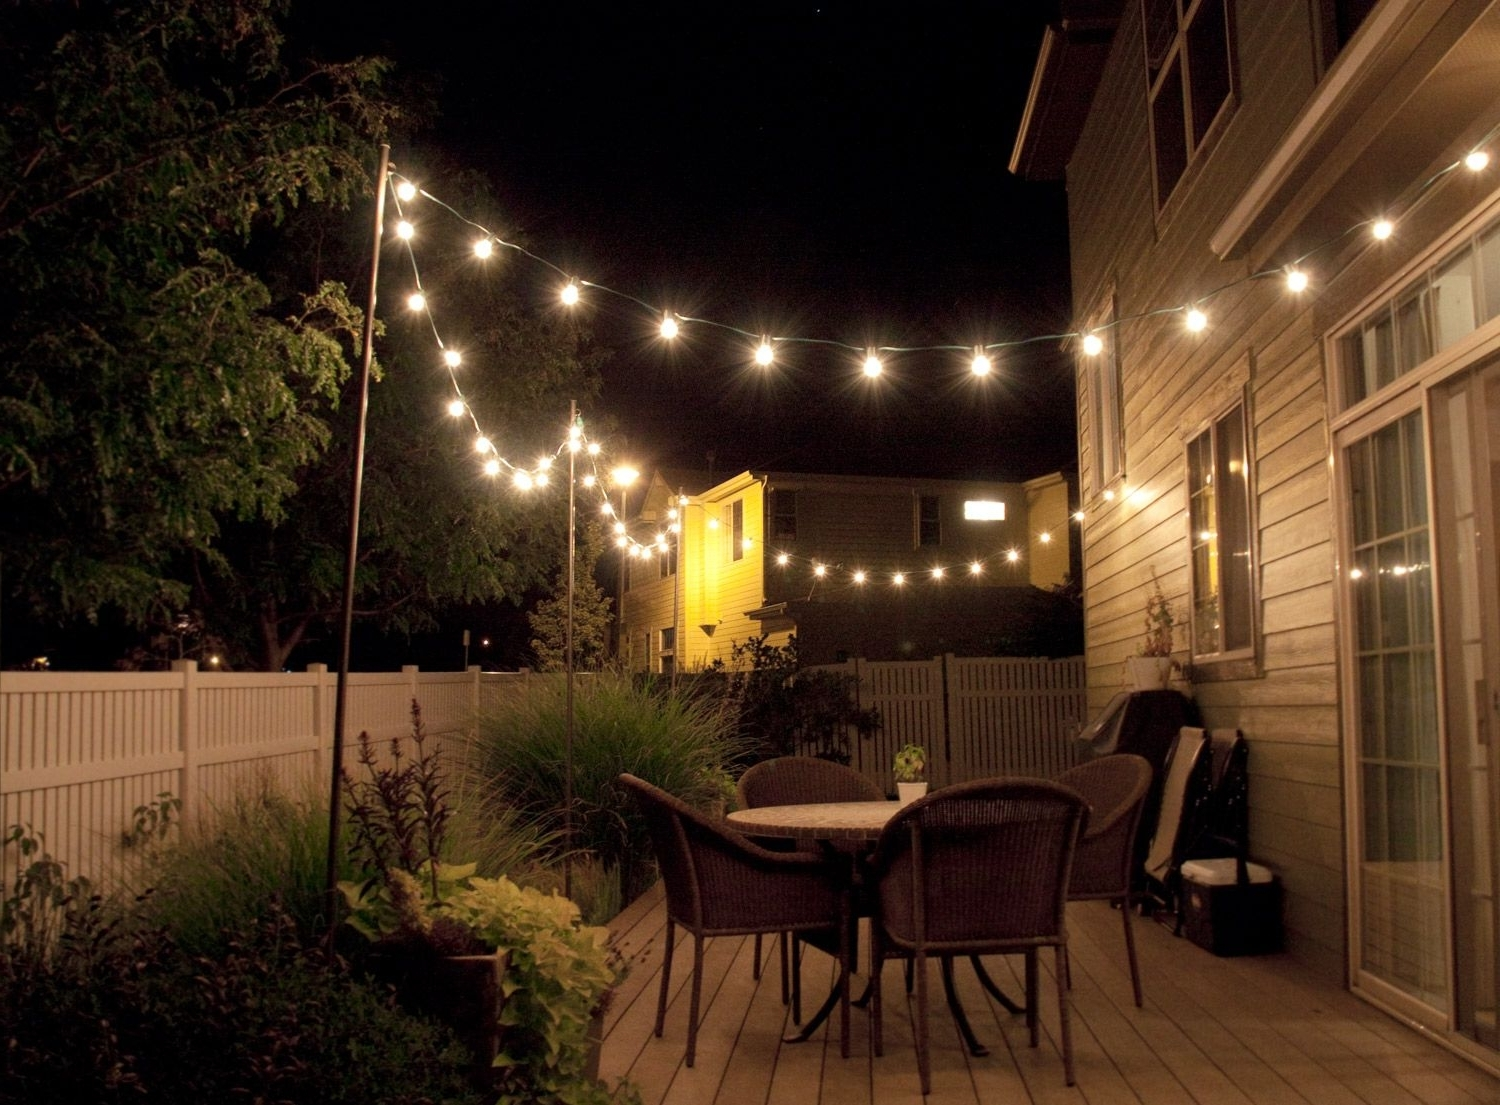 How To Make Inexpensive Poles To Hang String Lights On – Café Style Within Famous Outdoor Rope Lanterns (Gallery 11 of 20)